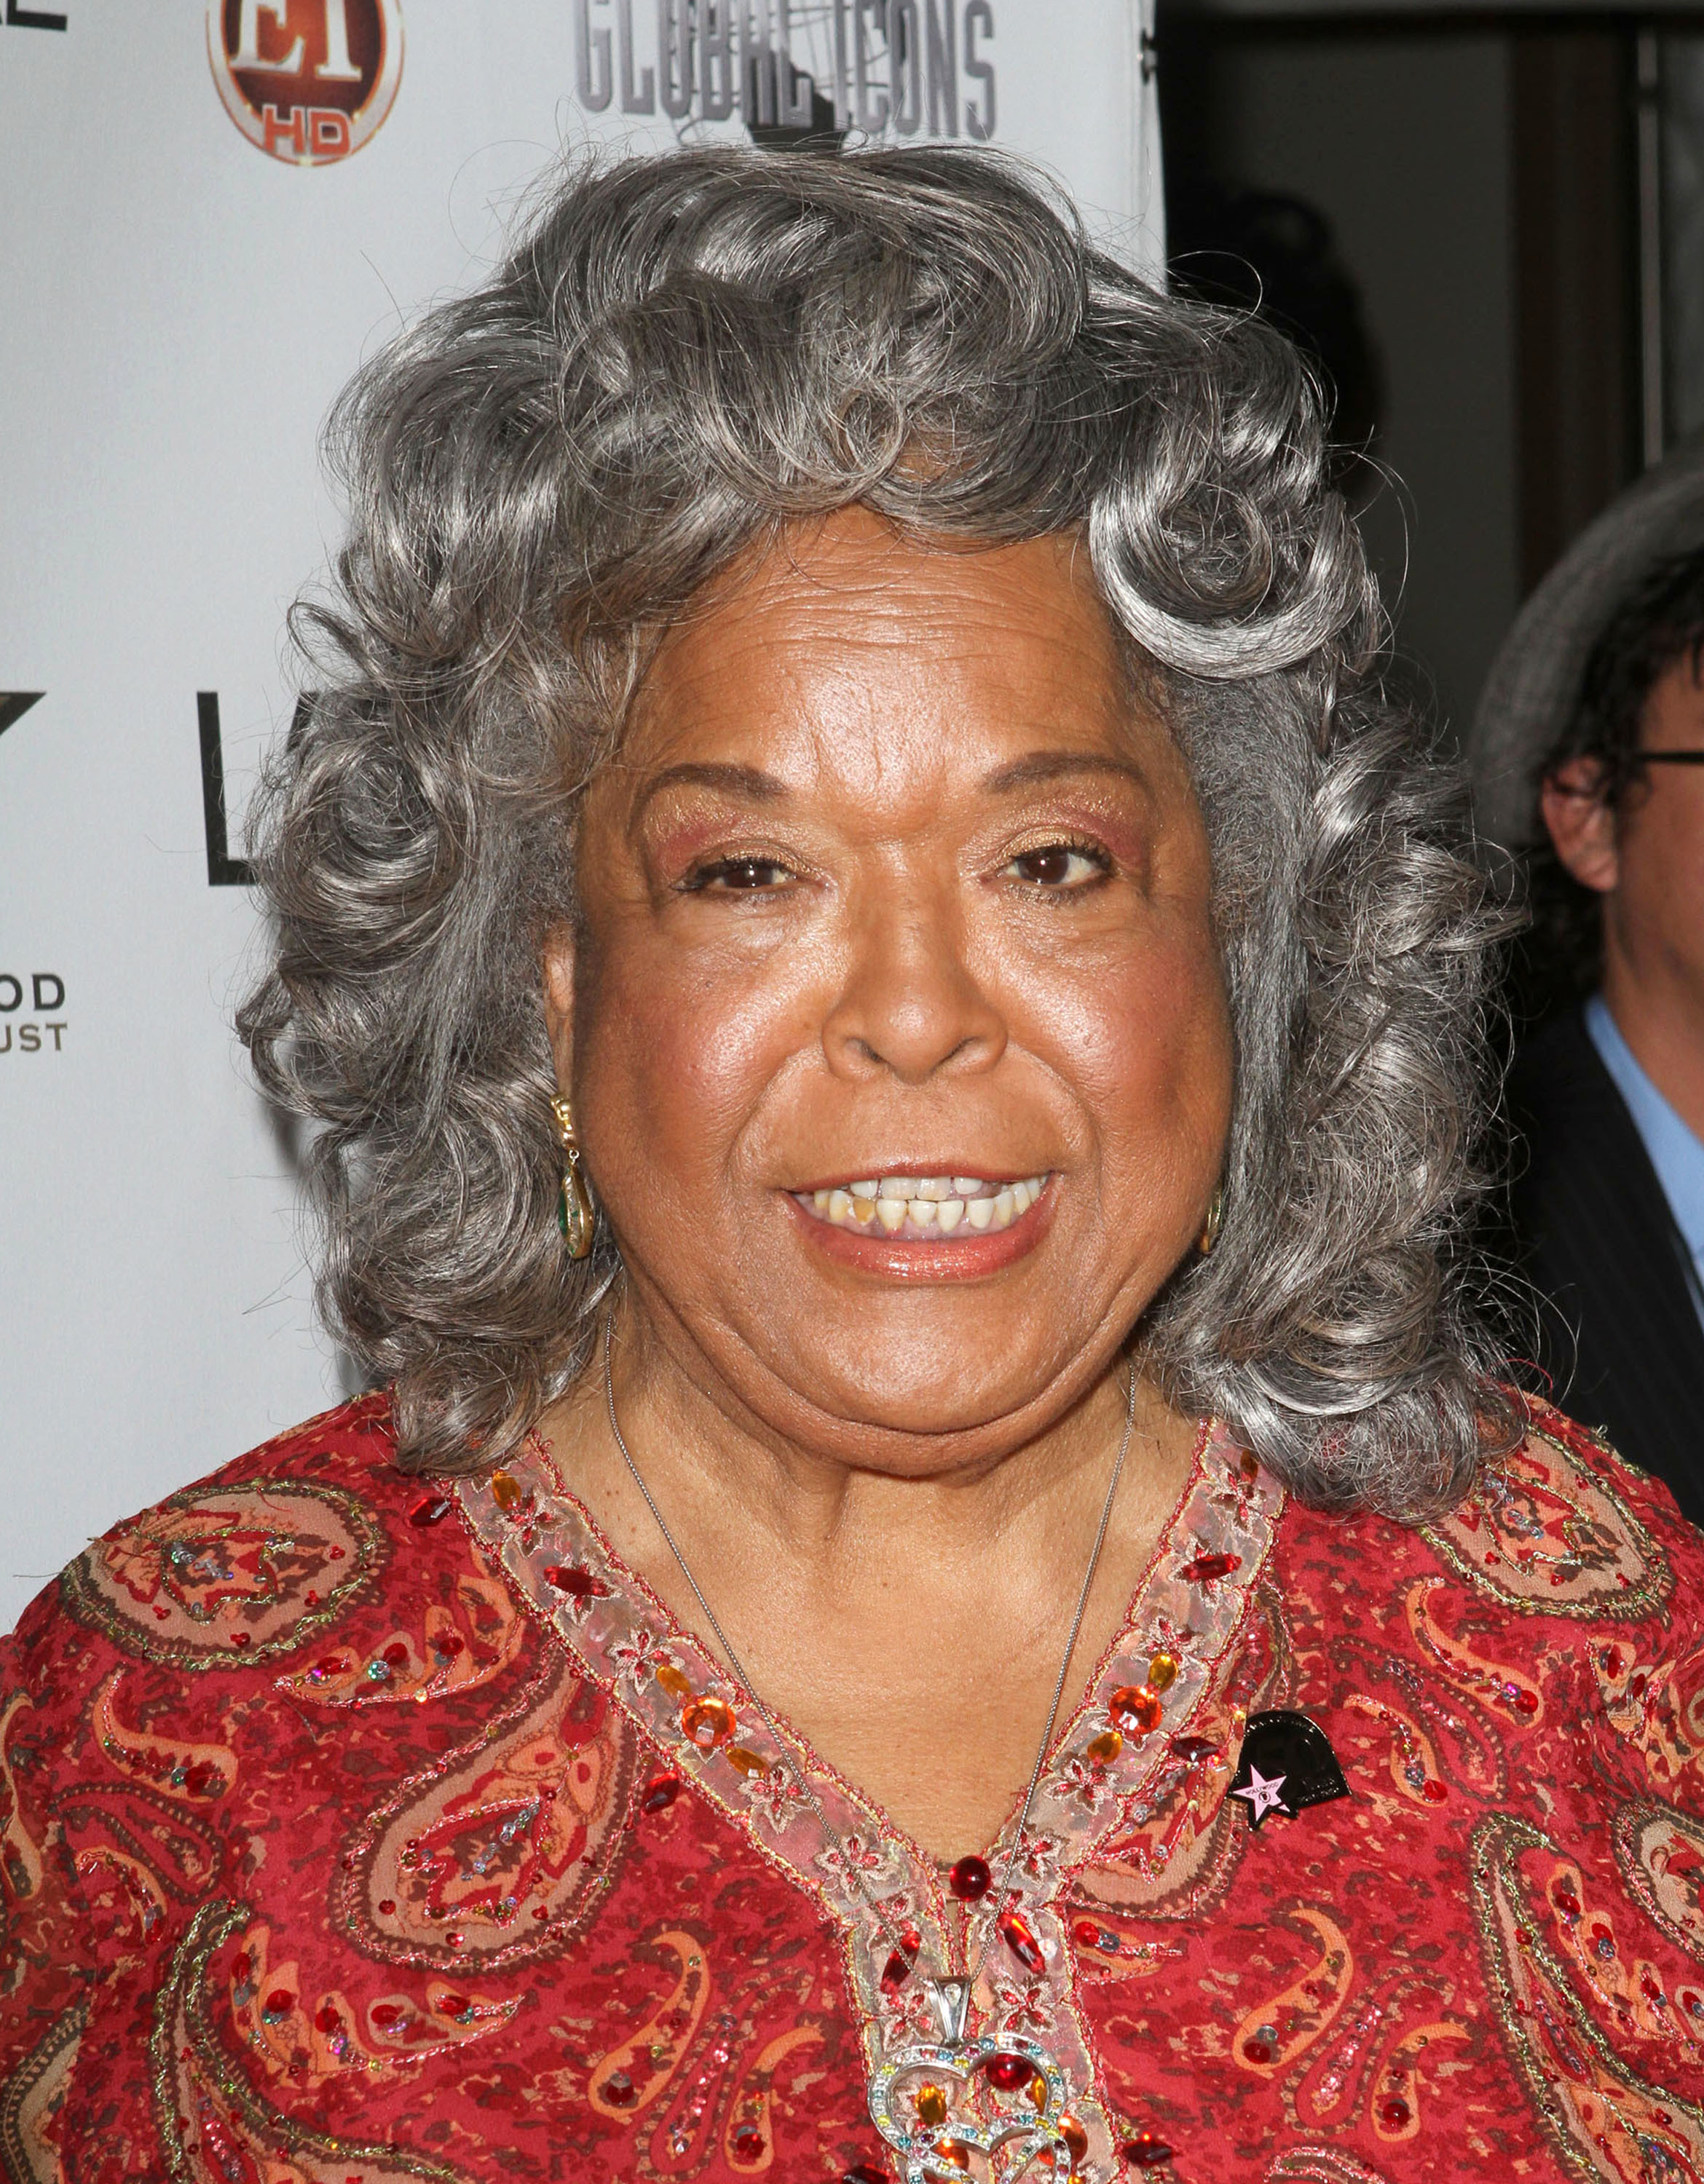 Della Reese at the 50th anniversary birthday bash for the Hollywood Walk of Fame on Nov. 3, 2010. (WENN.com)<p></p>